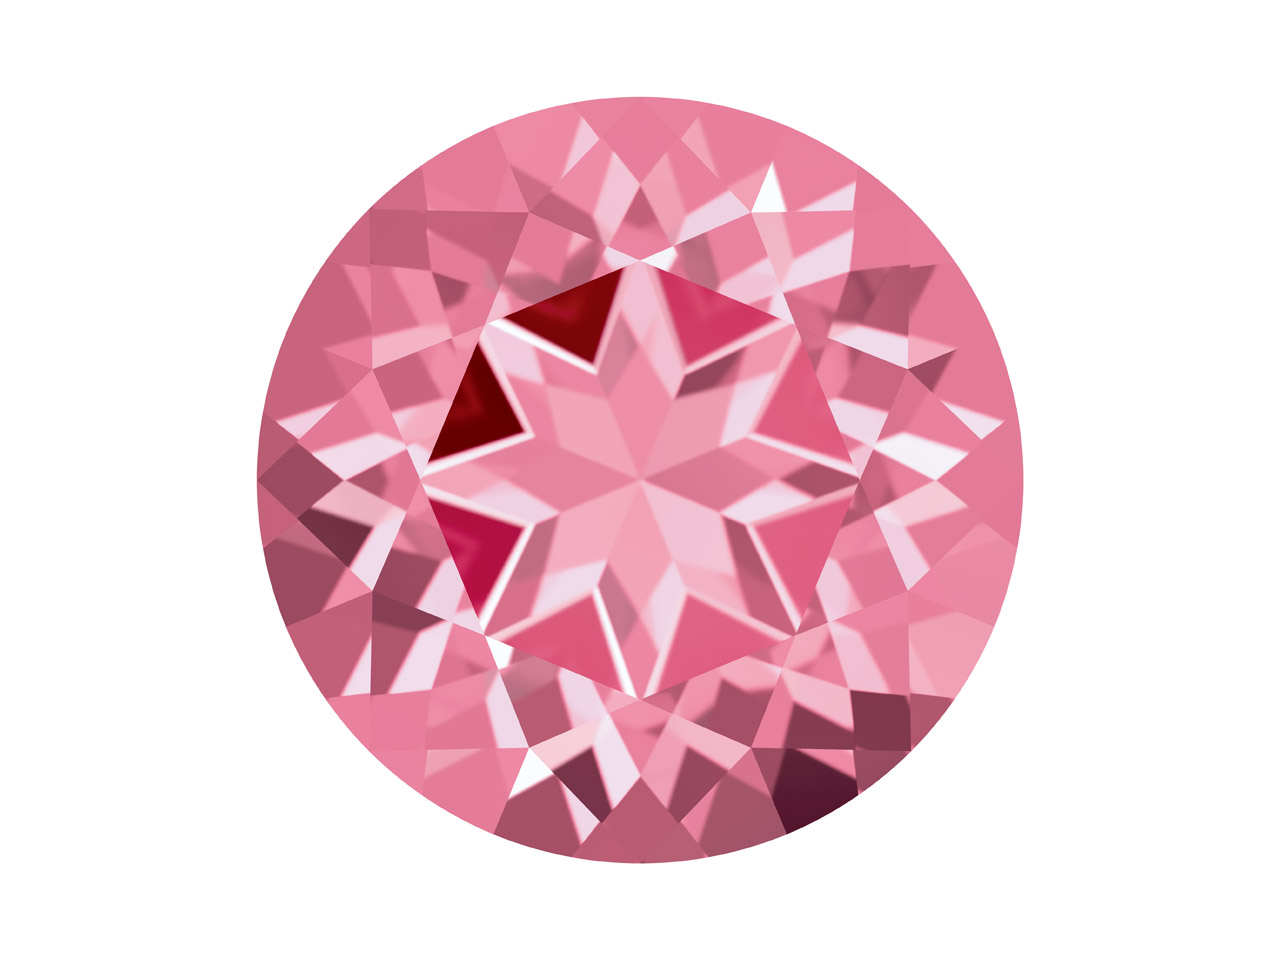 Swarovski Gemstones Genuine Topaz  Round Natural Brilliance Cut 3mm   Pink